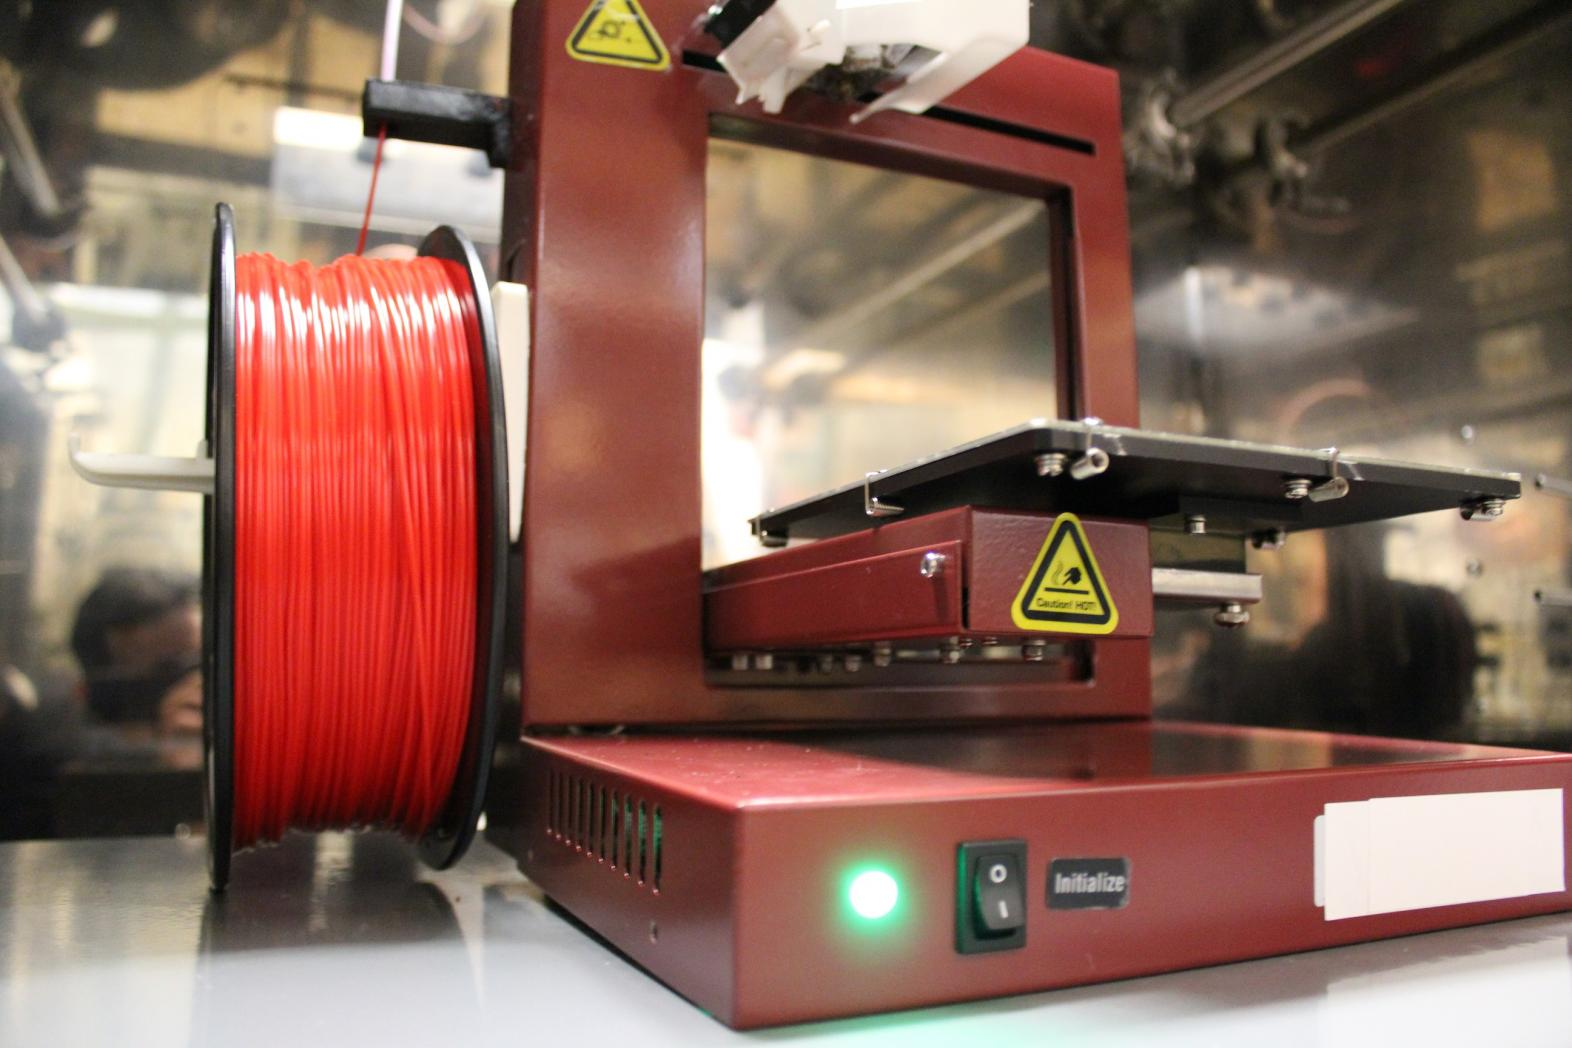 UL publishes ANSI/CAN/UL 2904 Standard for 3D printers